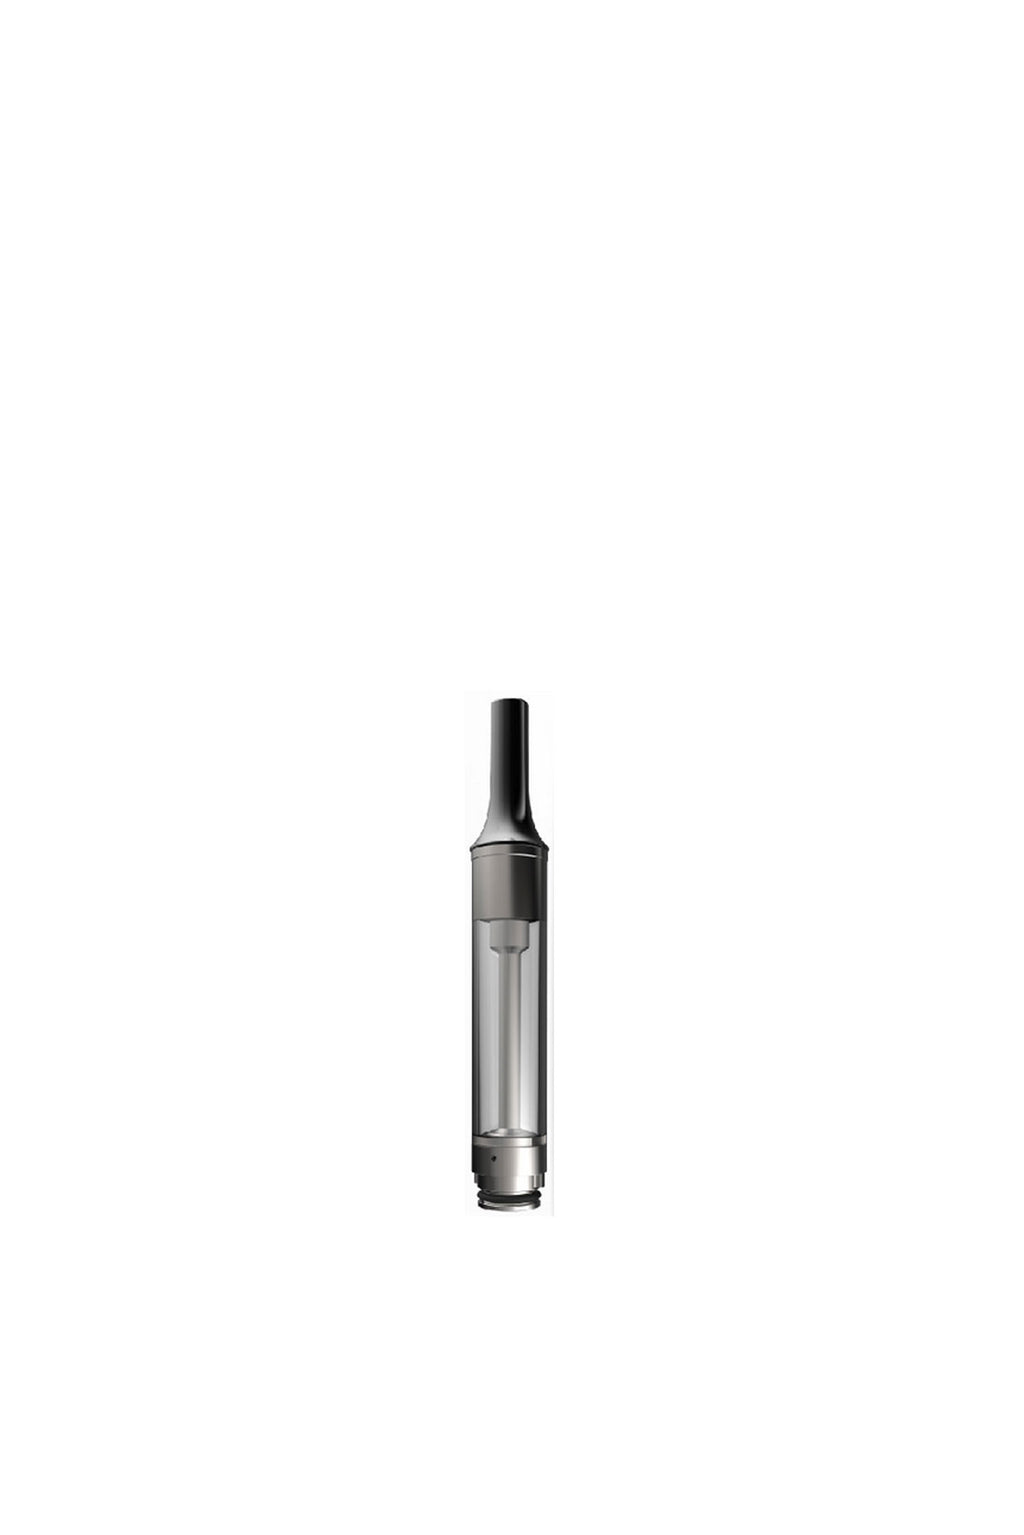 JWell iFit Clearomizer Tank